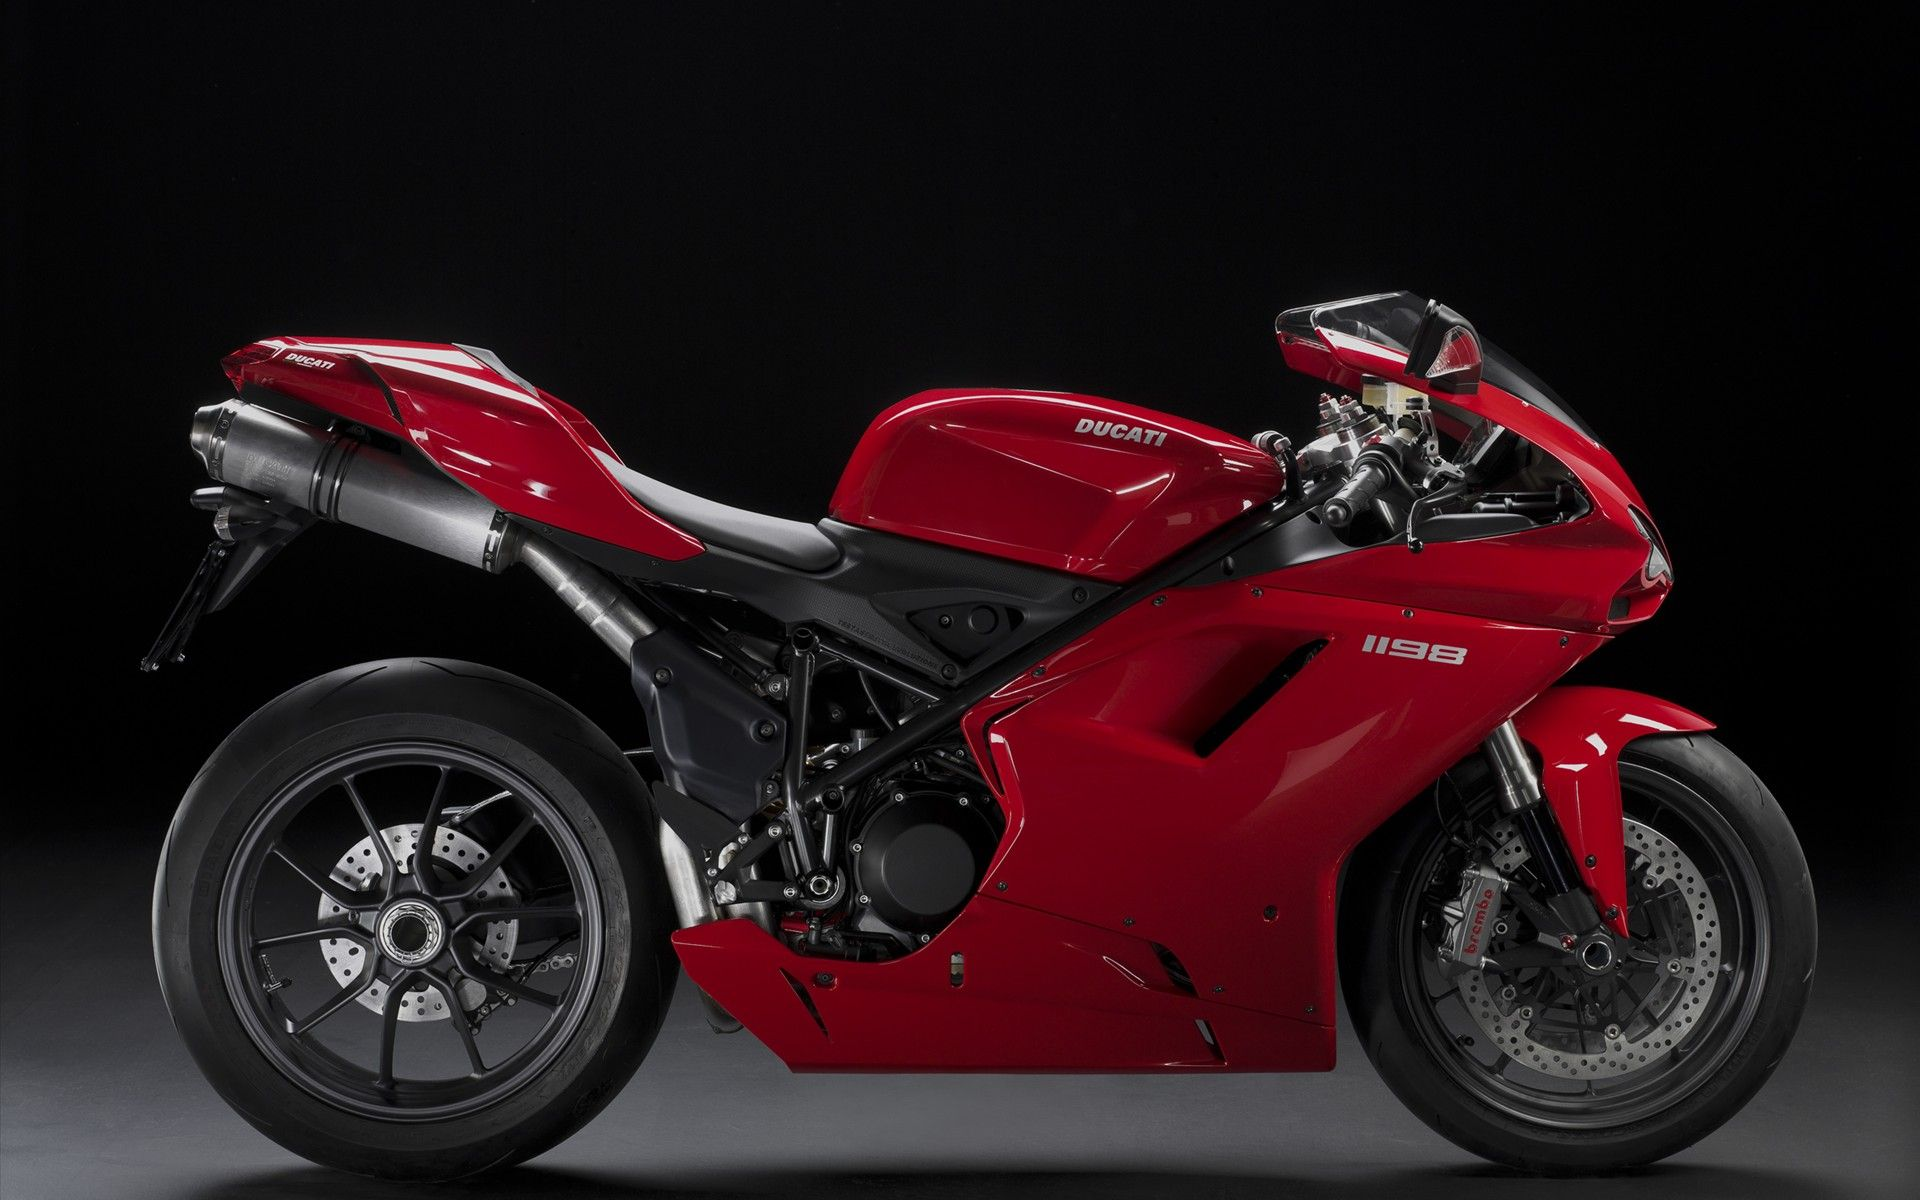 pure red ducati 1198 racing bike hd wallpaper | bikes wallpaper